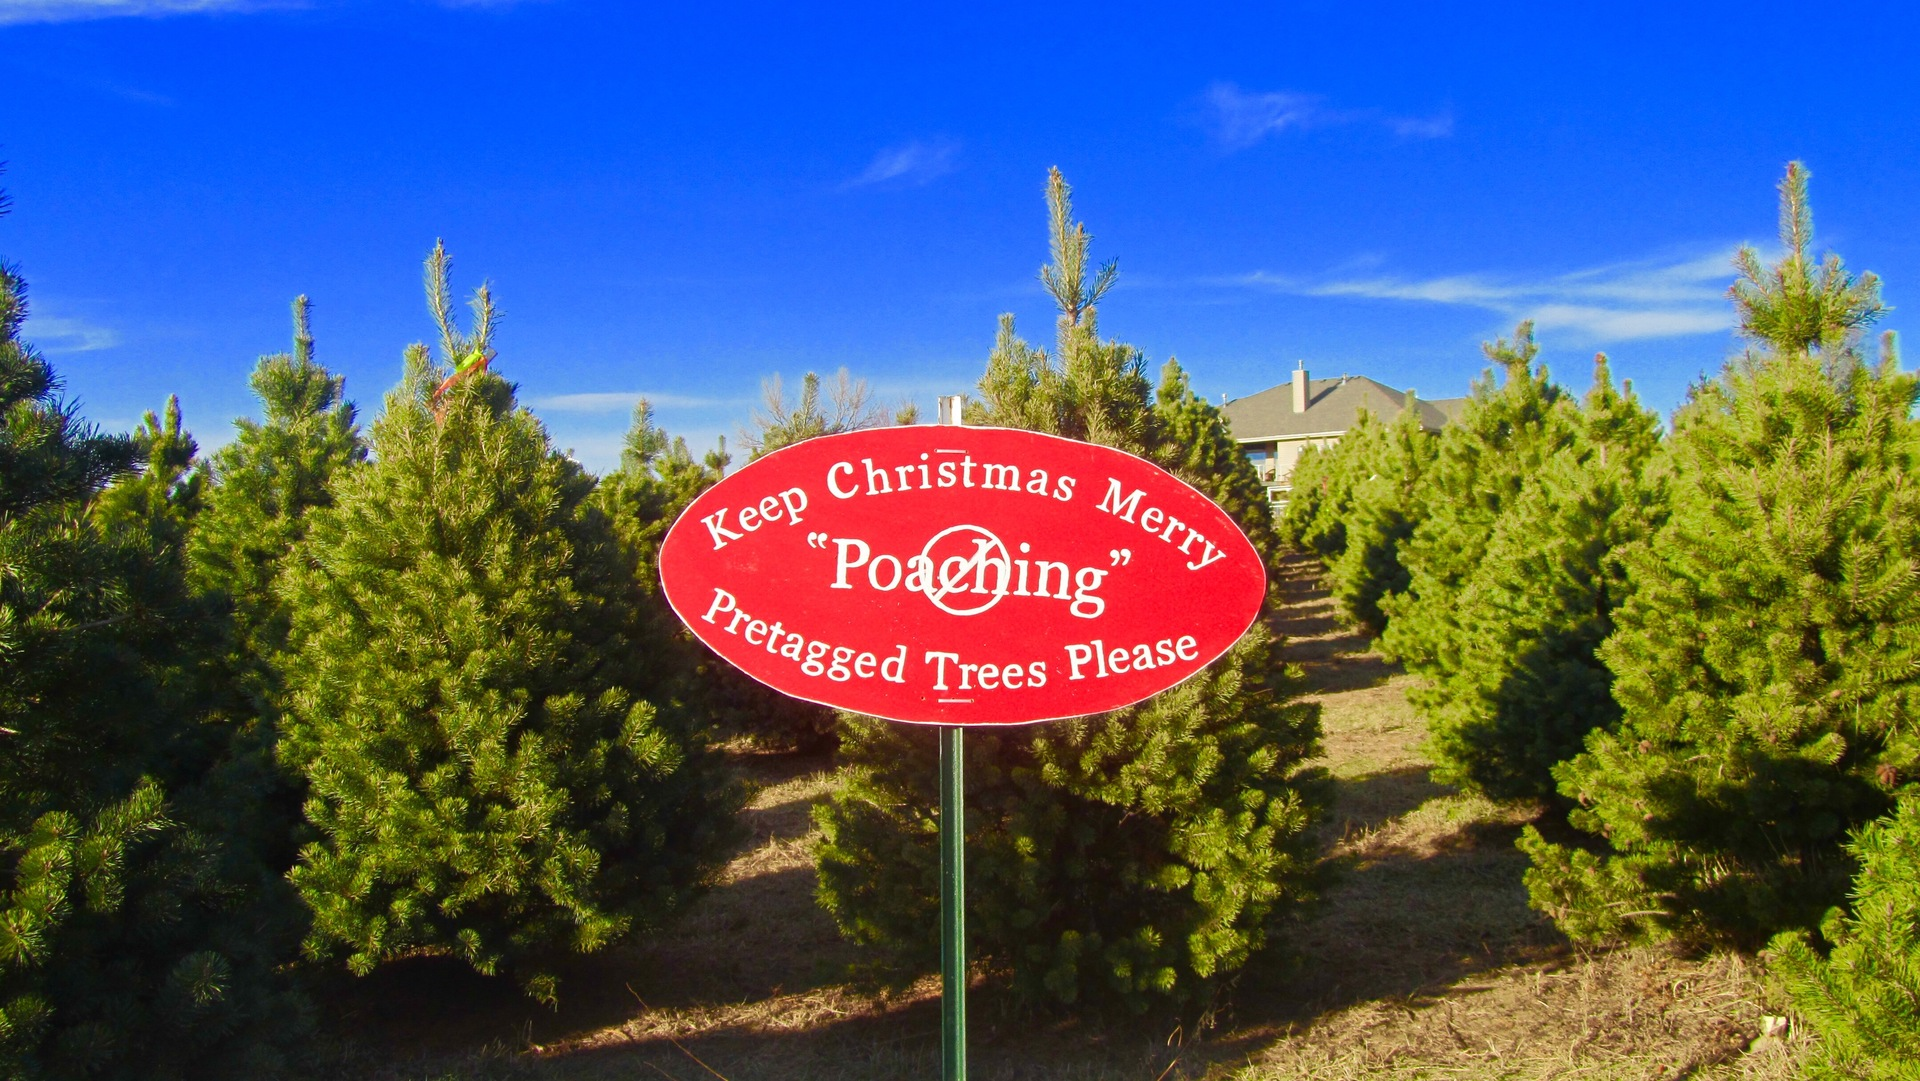 Red Color Story | tree, sky, sign, road